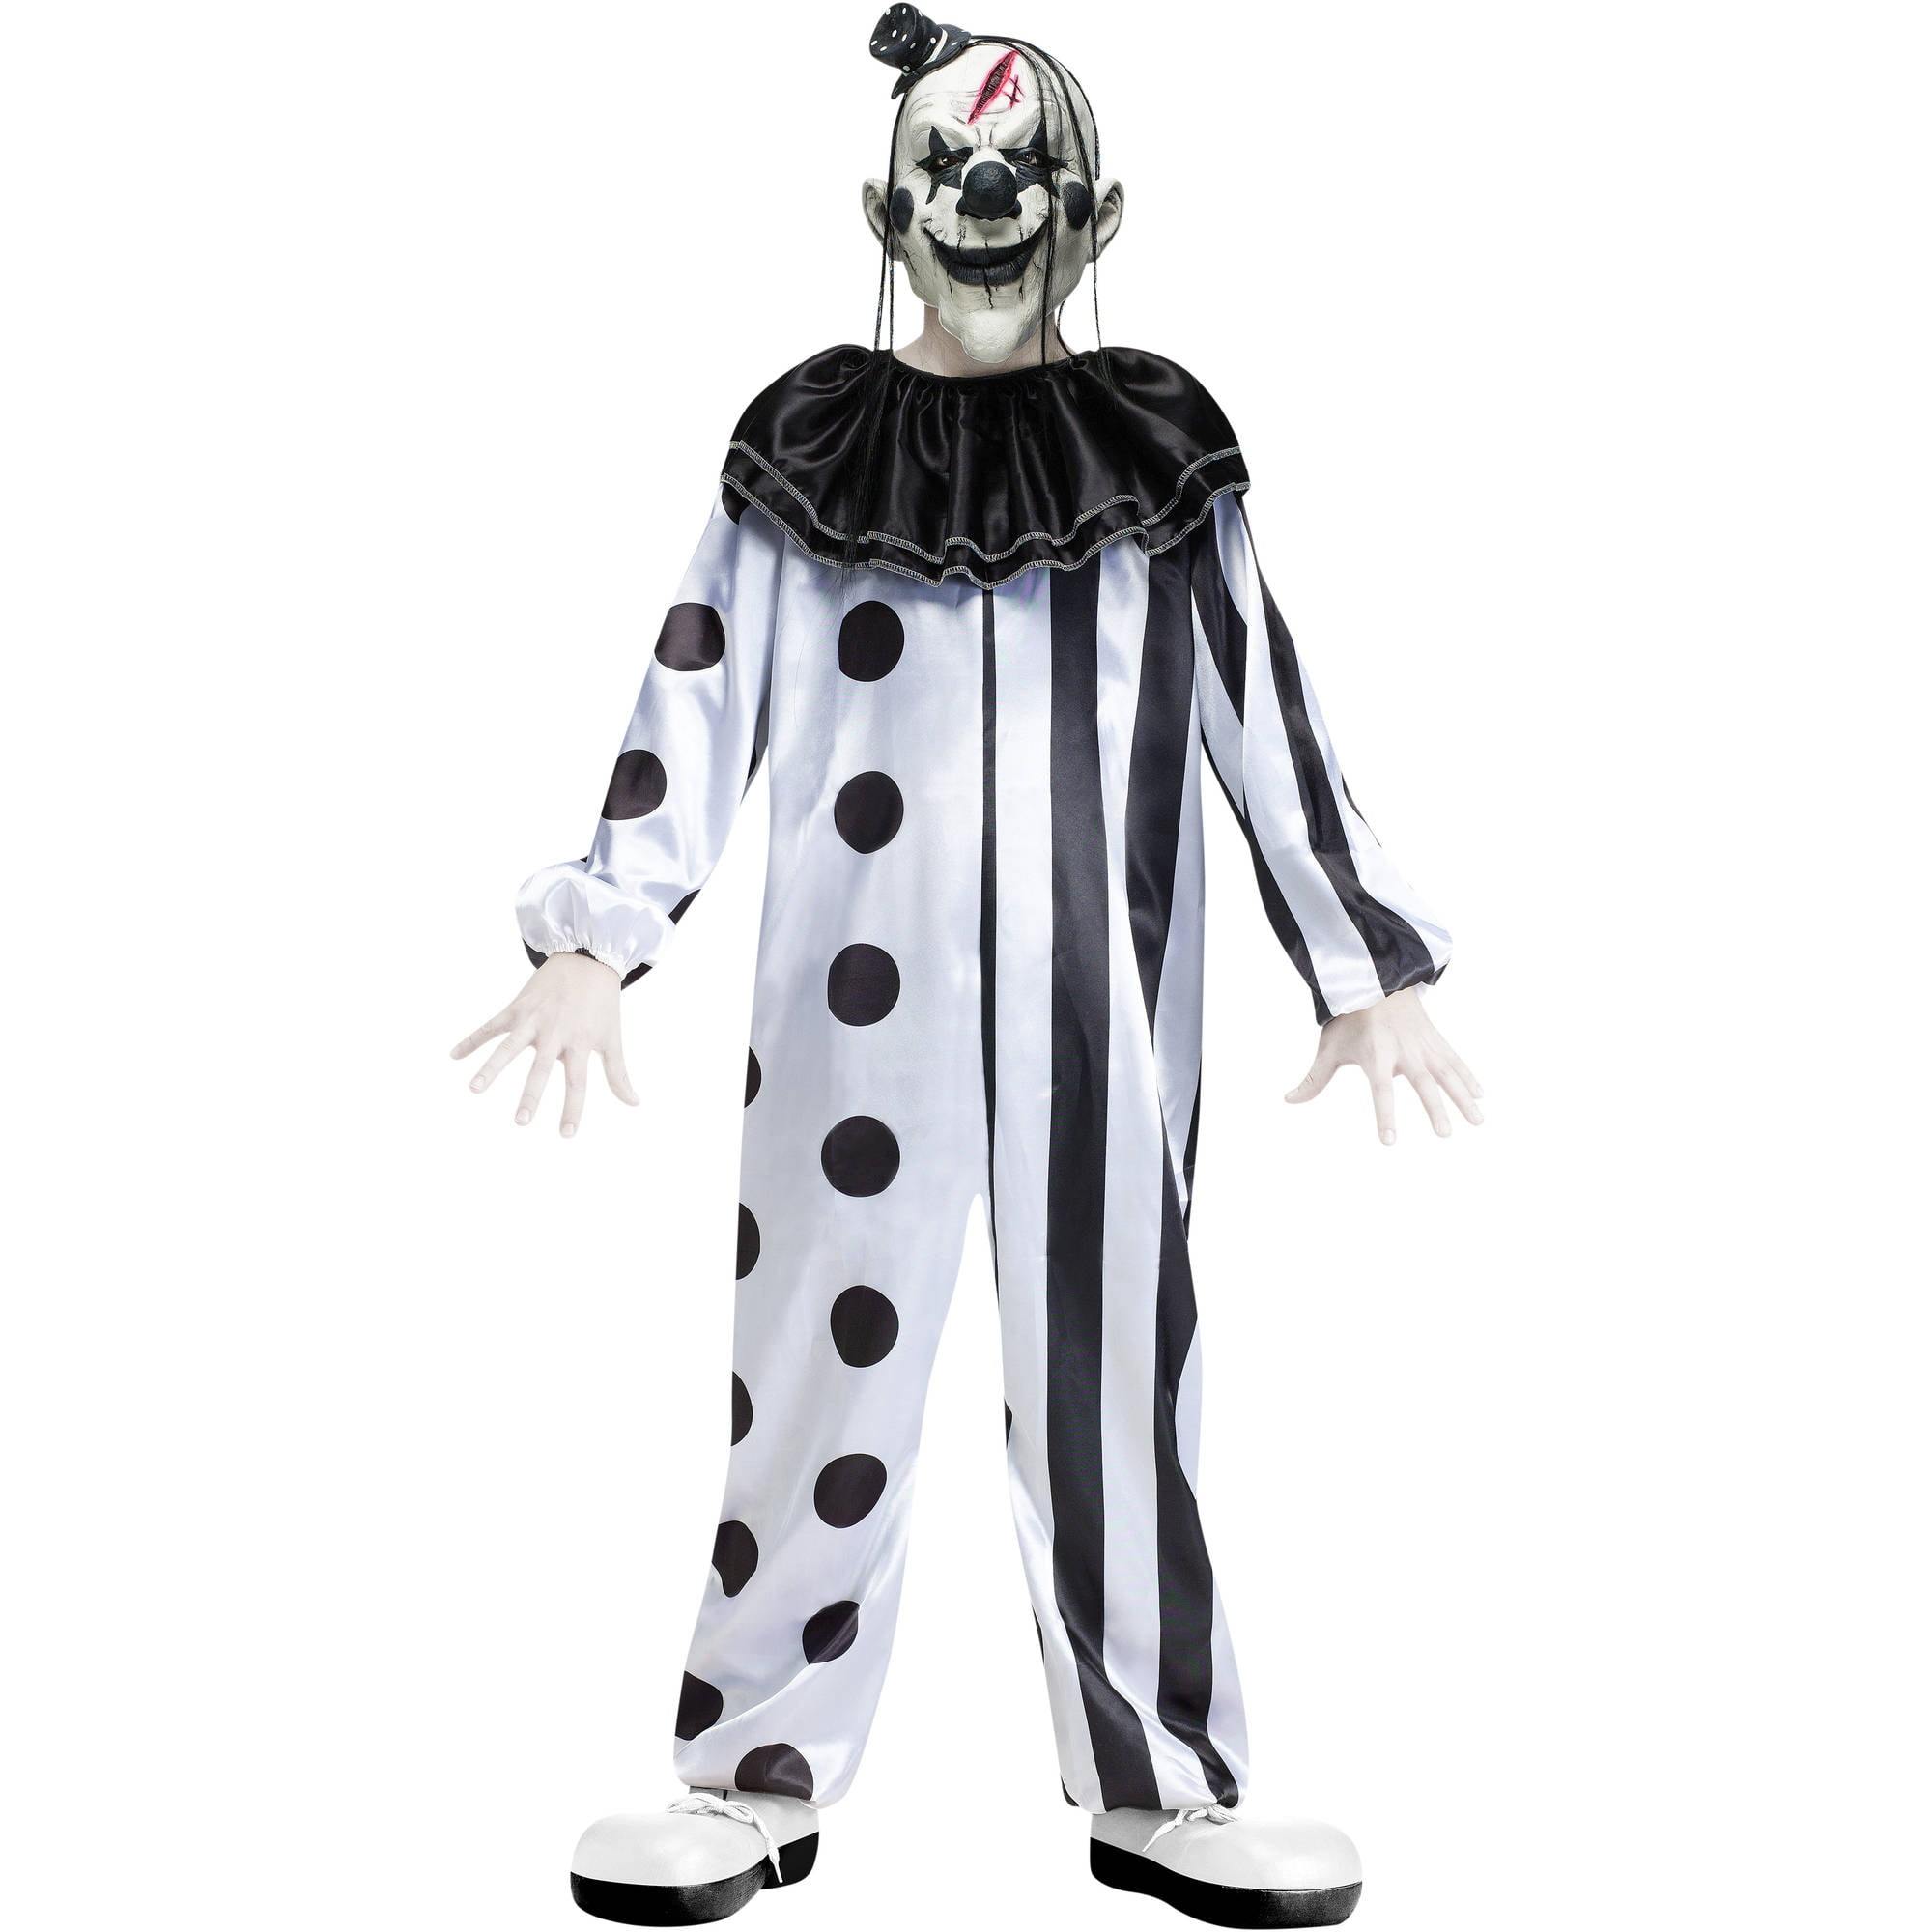 sc 1 st  Walmart & Fun World Killer Clown Boysu0027 Halloween Costume - Walmart.com